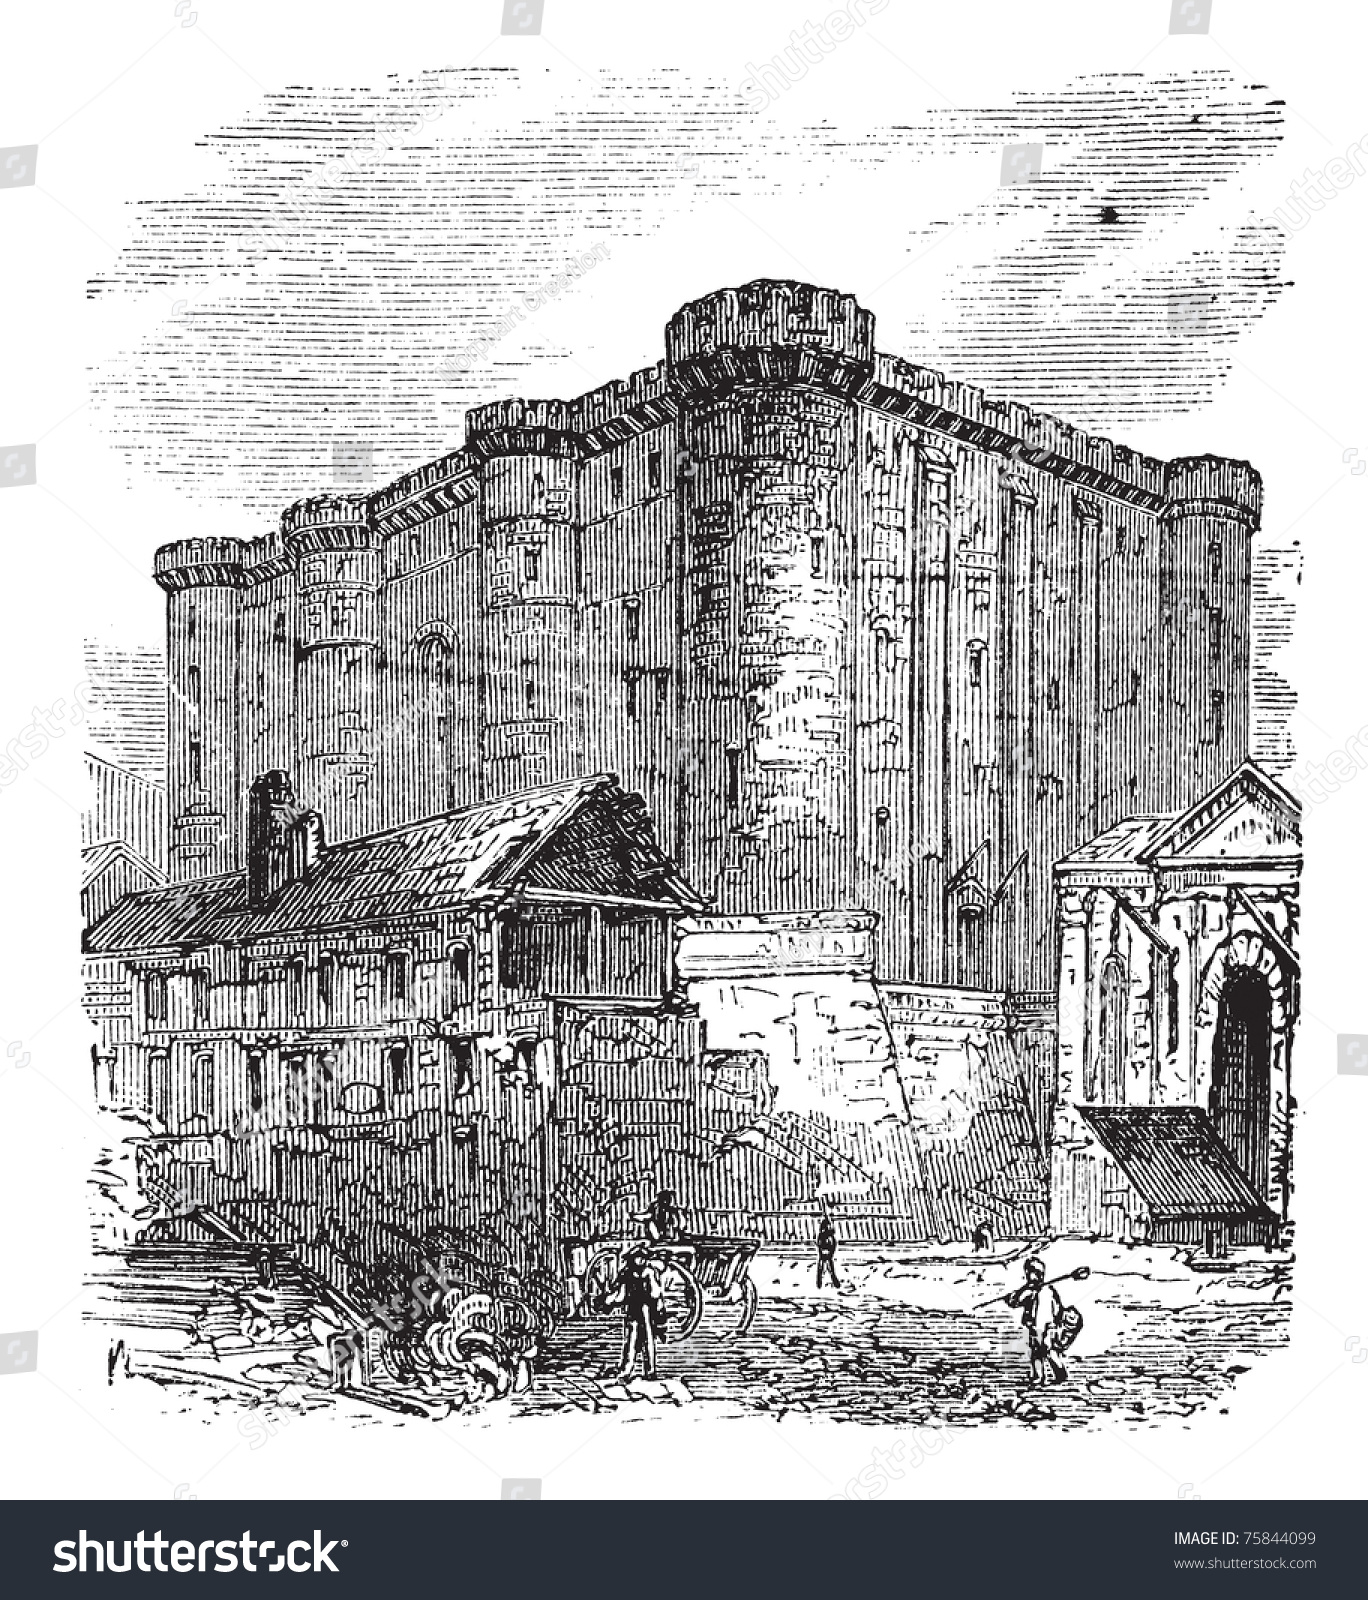 a history of the bastille the fortress in france Share this:ancientpagescom – on 14 july 1789, the paris fortress-prison bastille was attacked by parisian revolutionaries and mutinous troops the bastille, a.